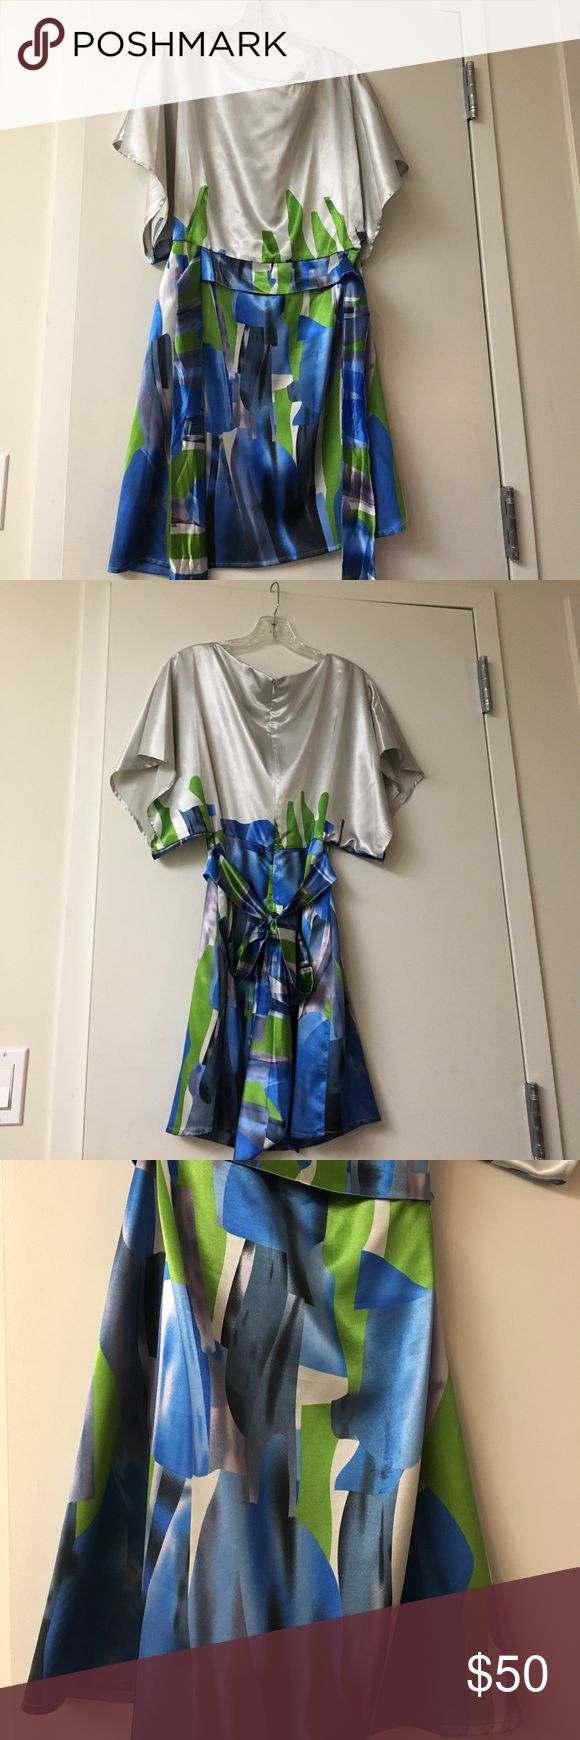 BCBG MAXAZARIA Summer Dress in XS Flowy Summer Dress in Silver with a blue and green block pattern. Attached tie creates a nice waist line. Only worn once to a wedding! Perfect for summer events or a night out! BCBGMaxAzria Dresses Mini